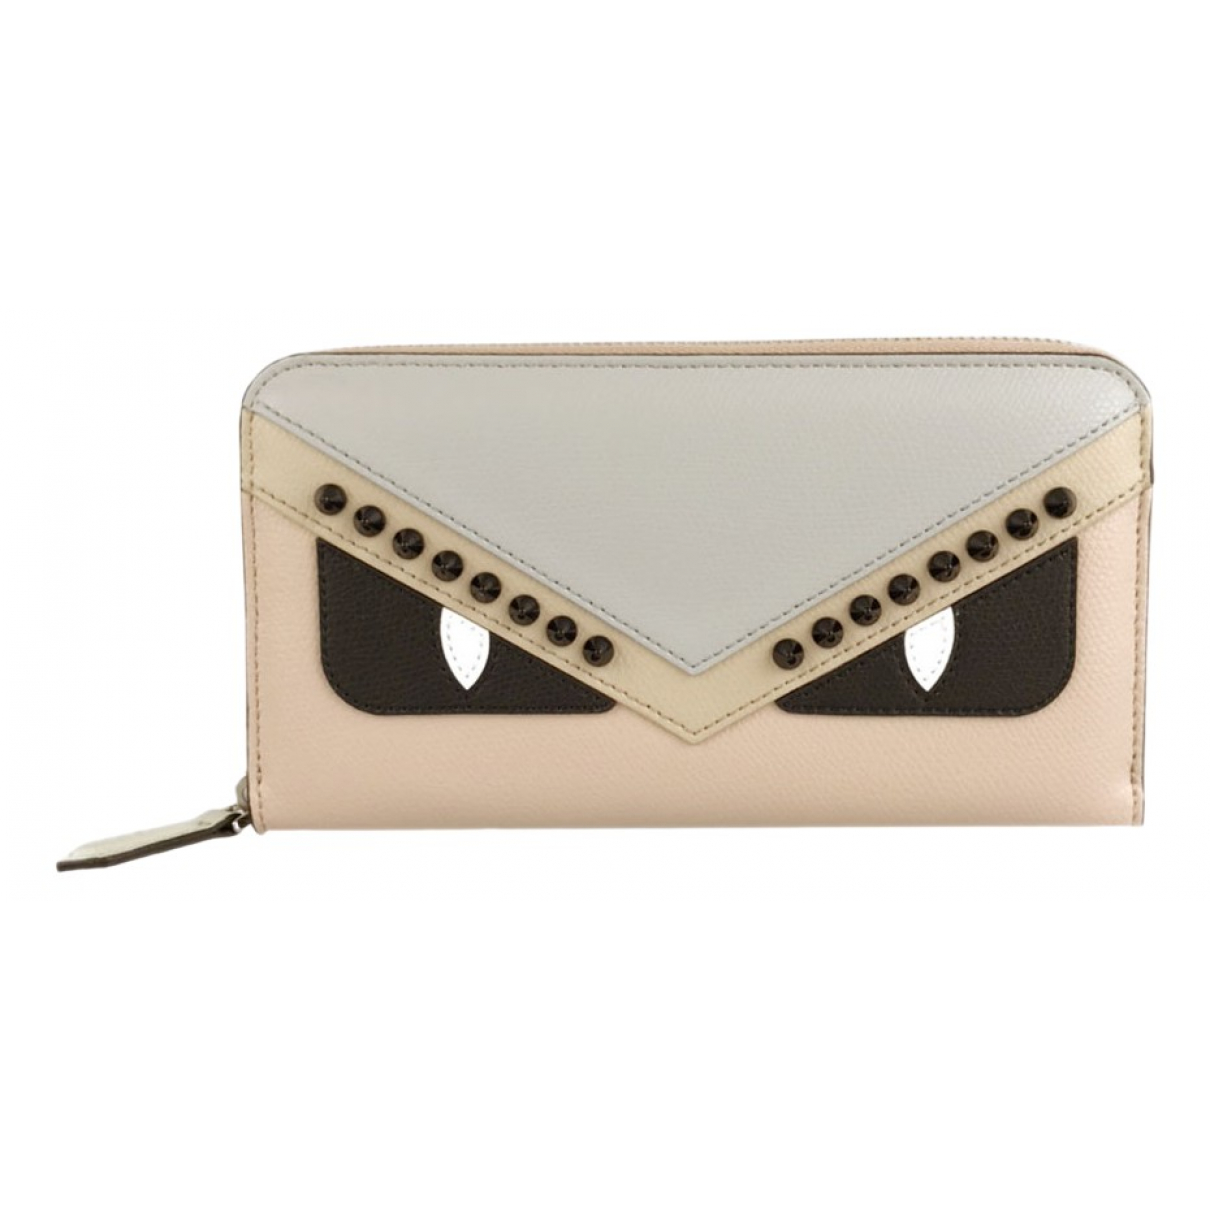 Fendi N Beige Leather wallet for Women N